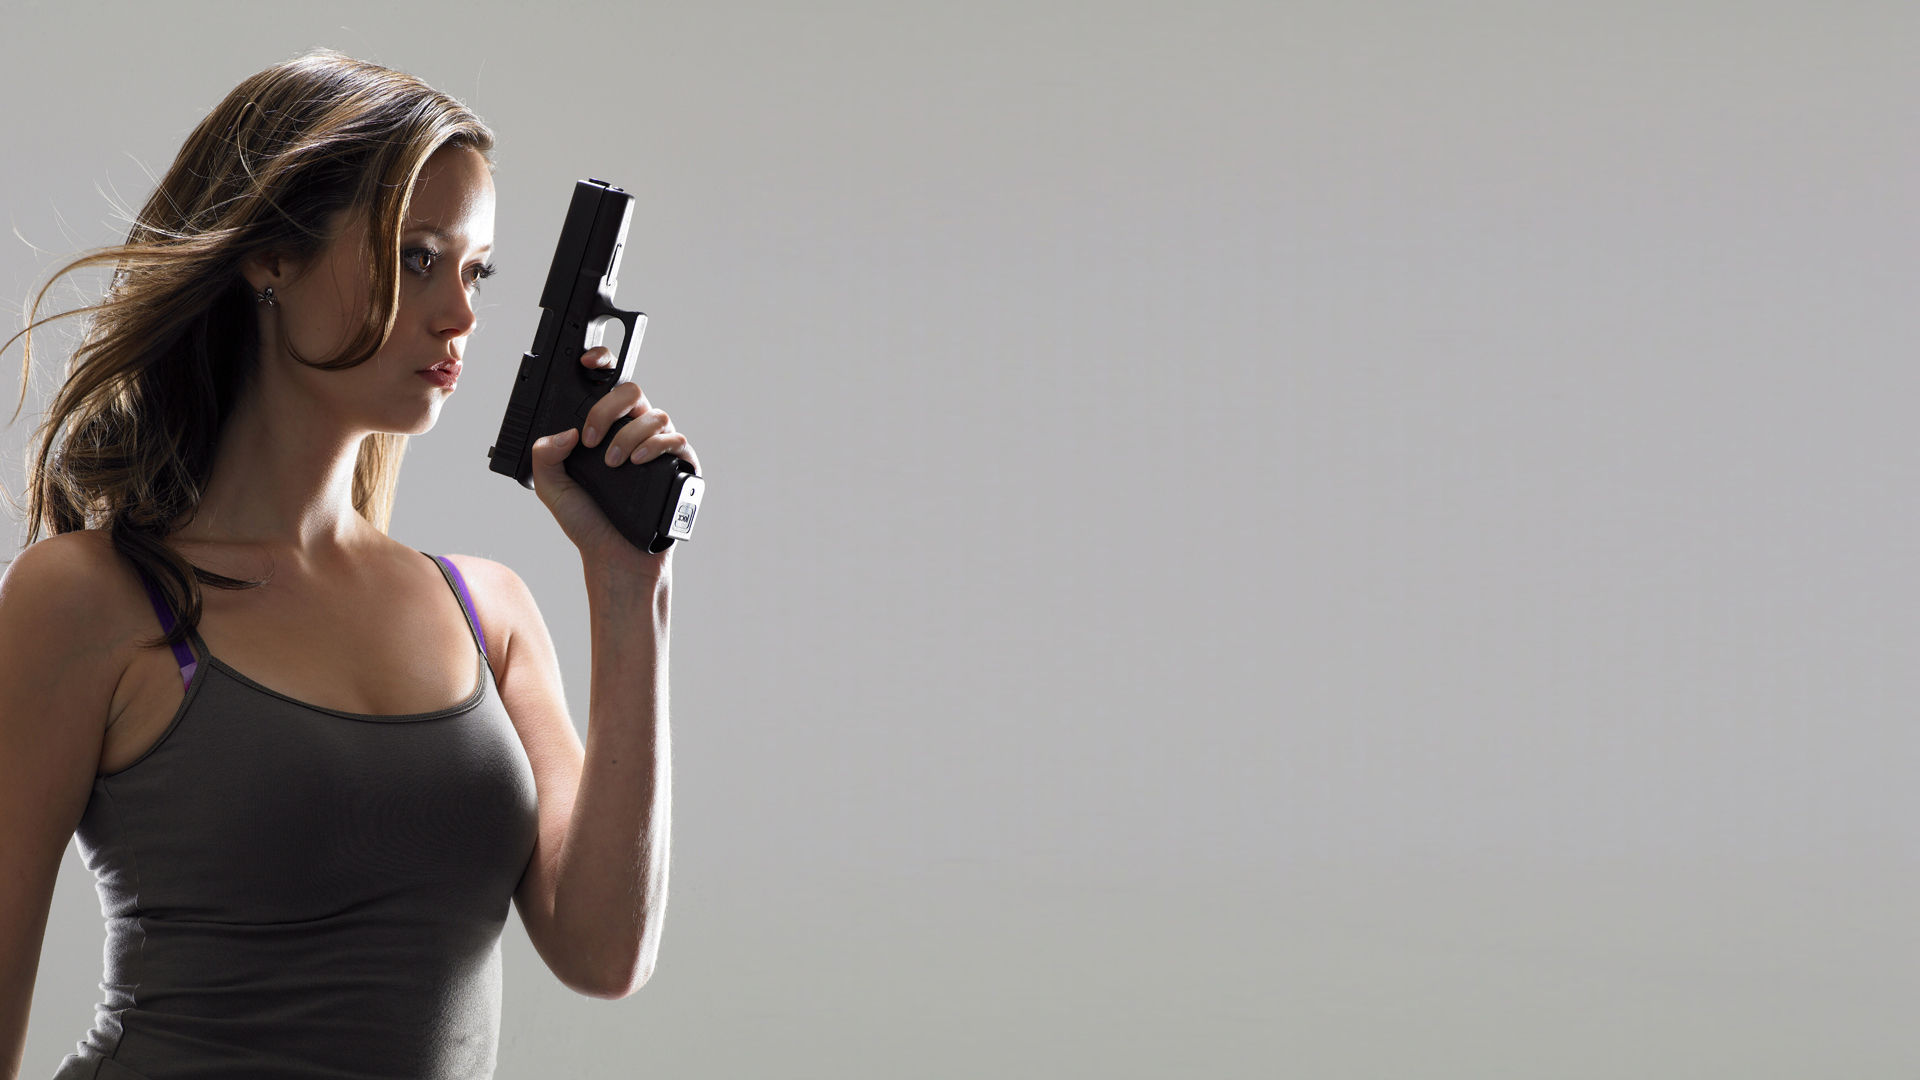 woman pistols Guns summer HD Wallpaper